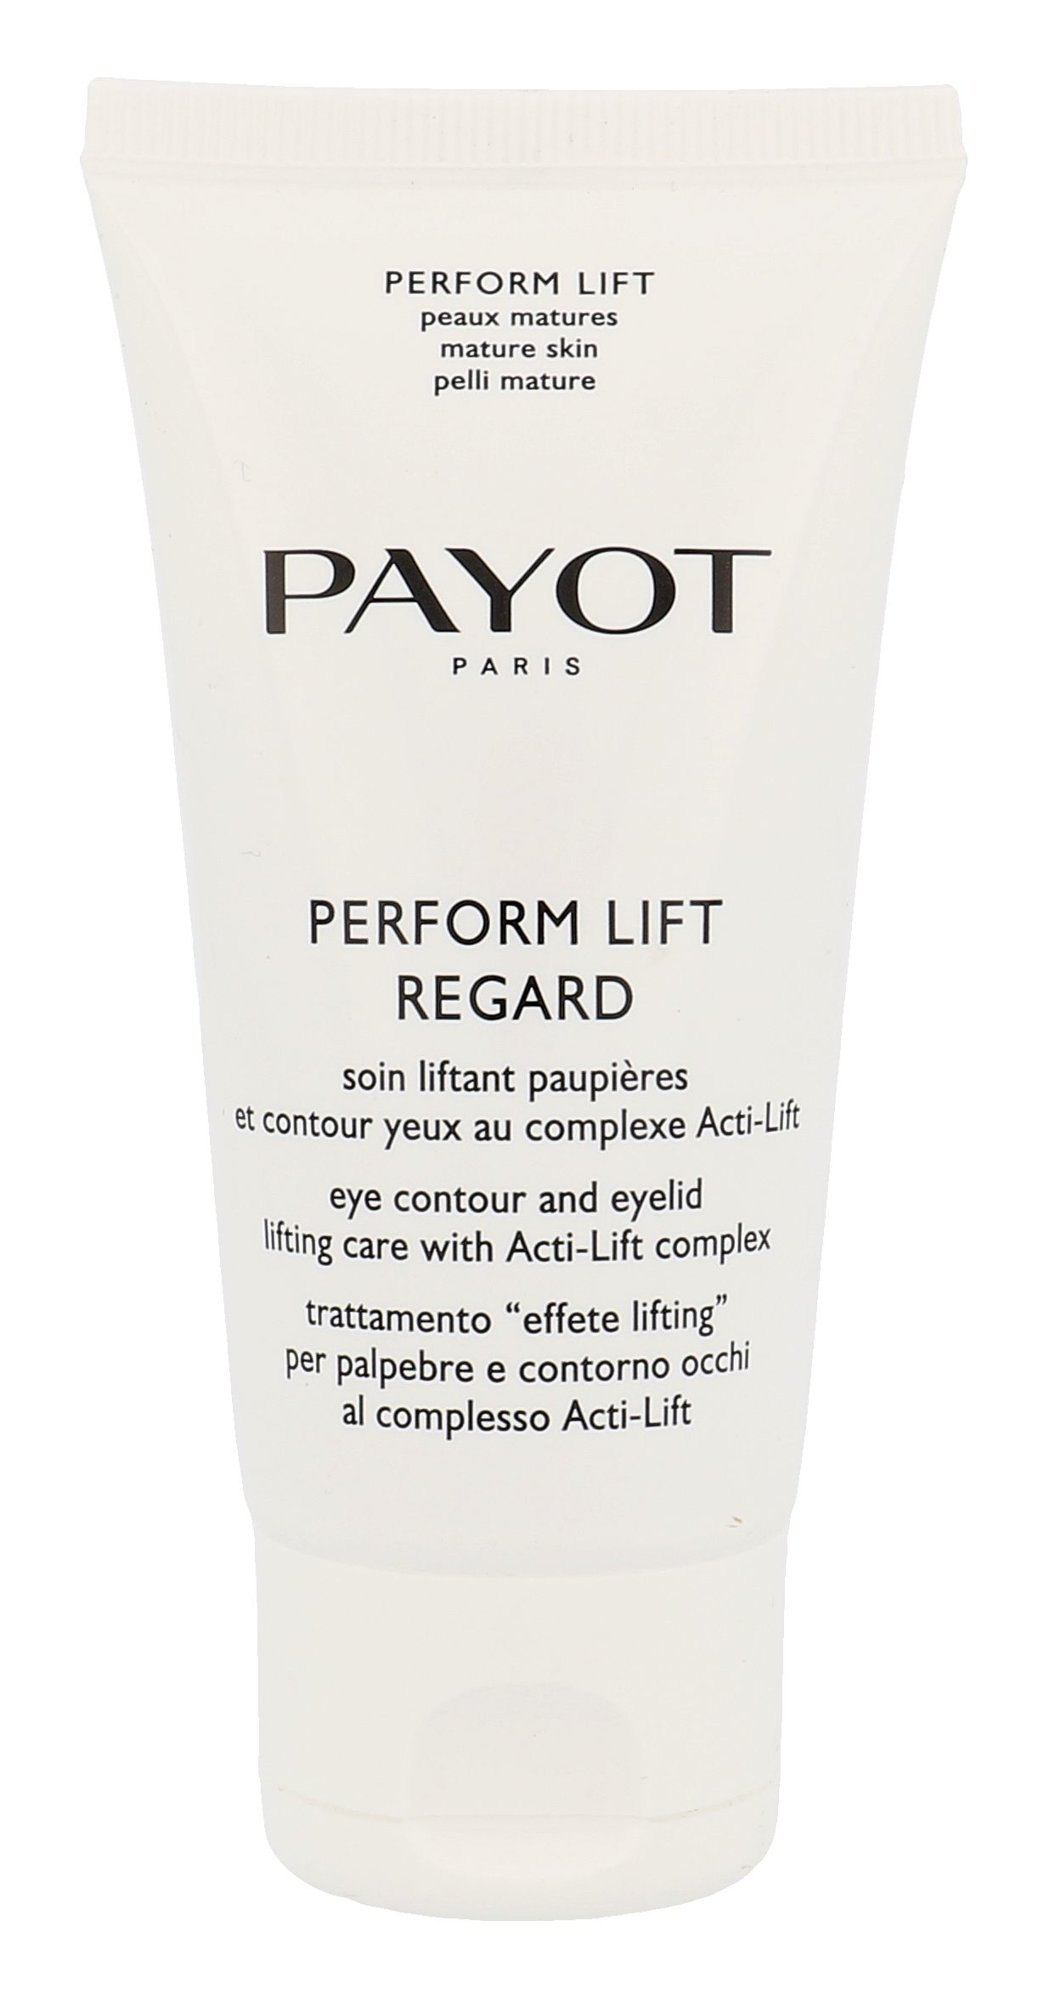 PAYOT Perform Lift Cosmetic 50ml  Regard